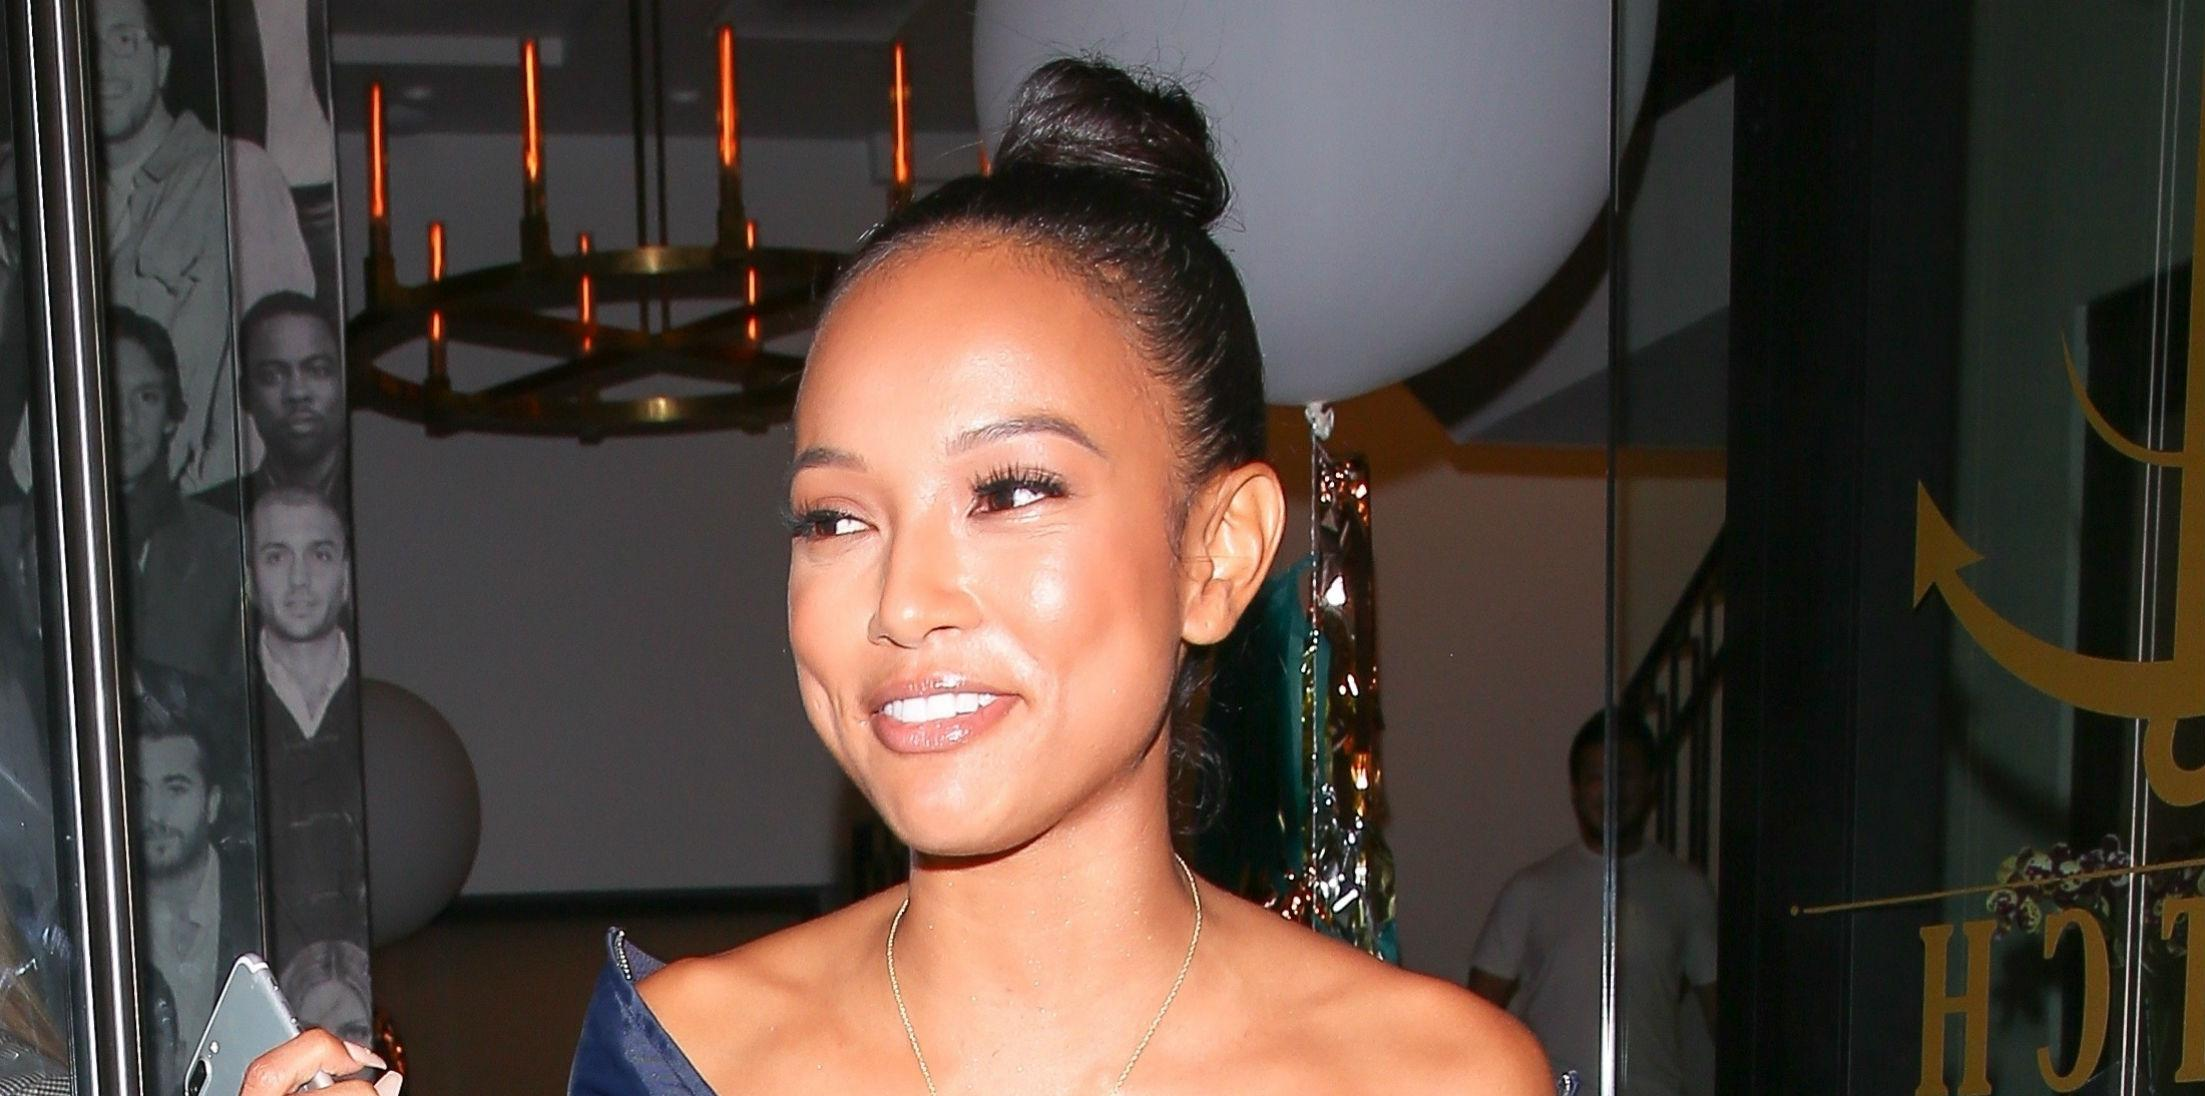 Karrueche Tran Wears Revealing Outfit Thong Photos hero